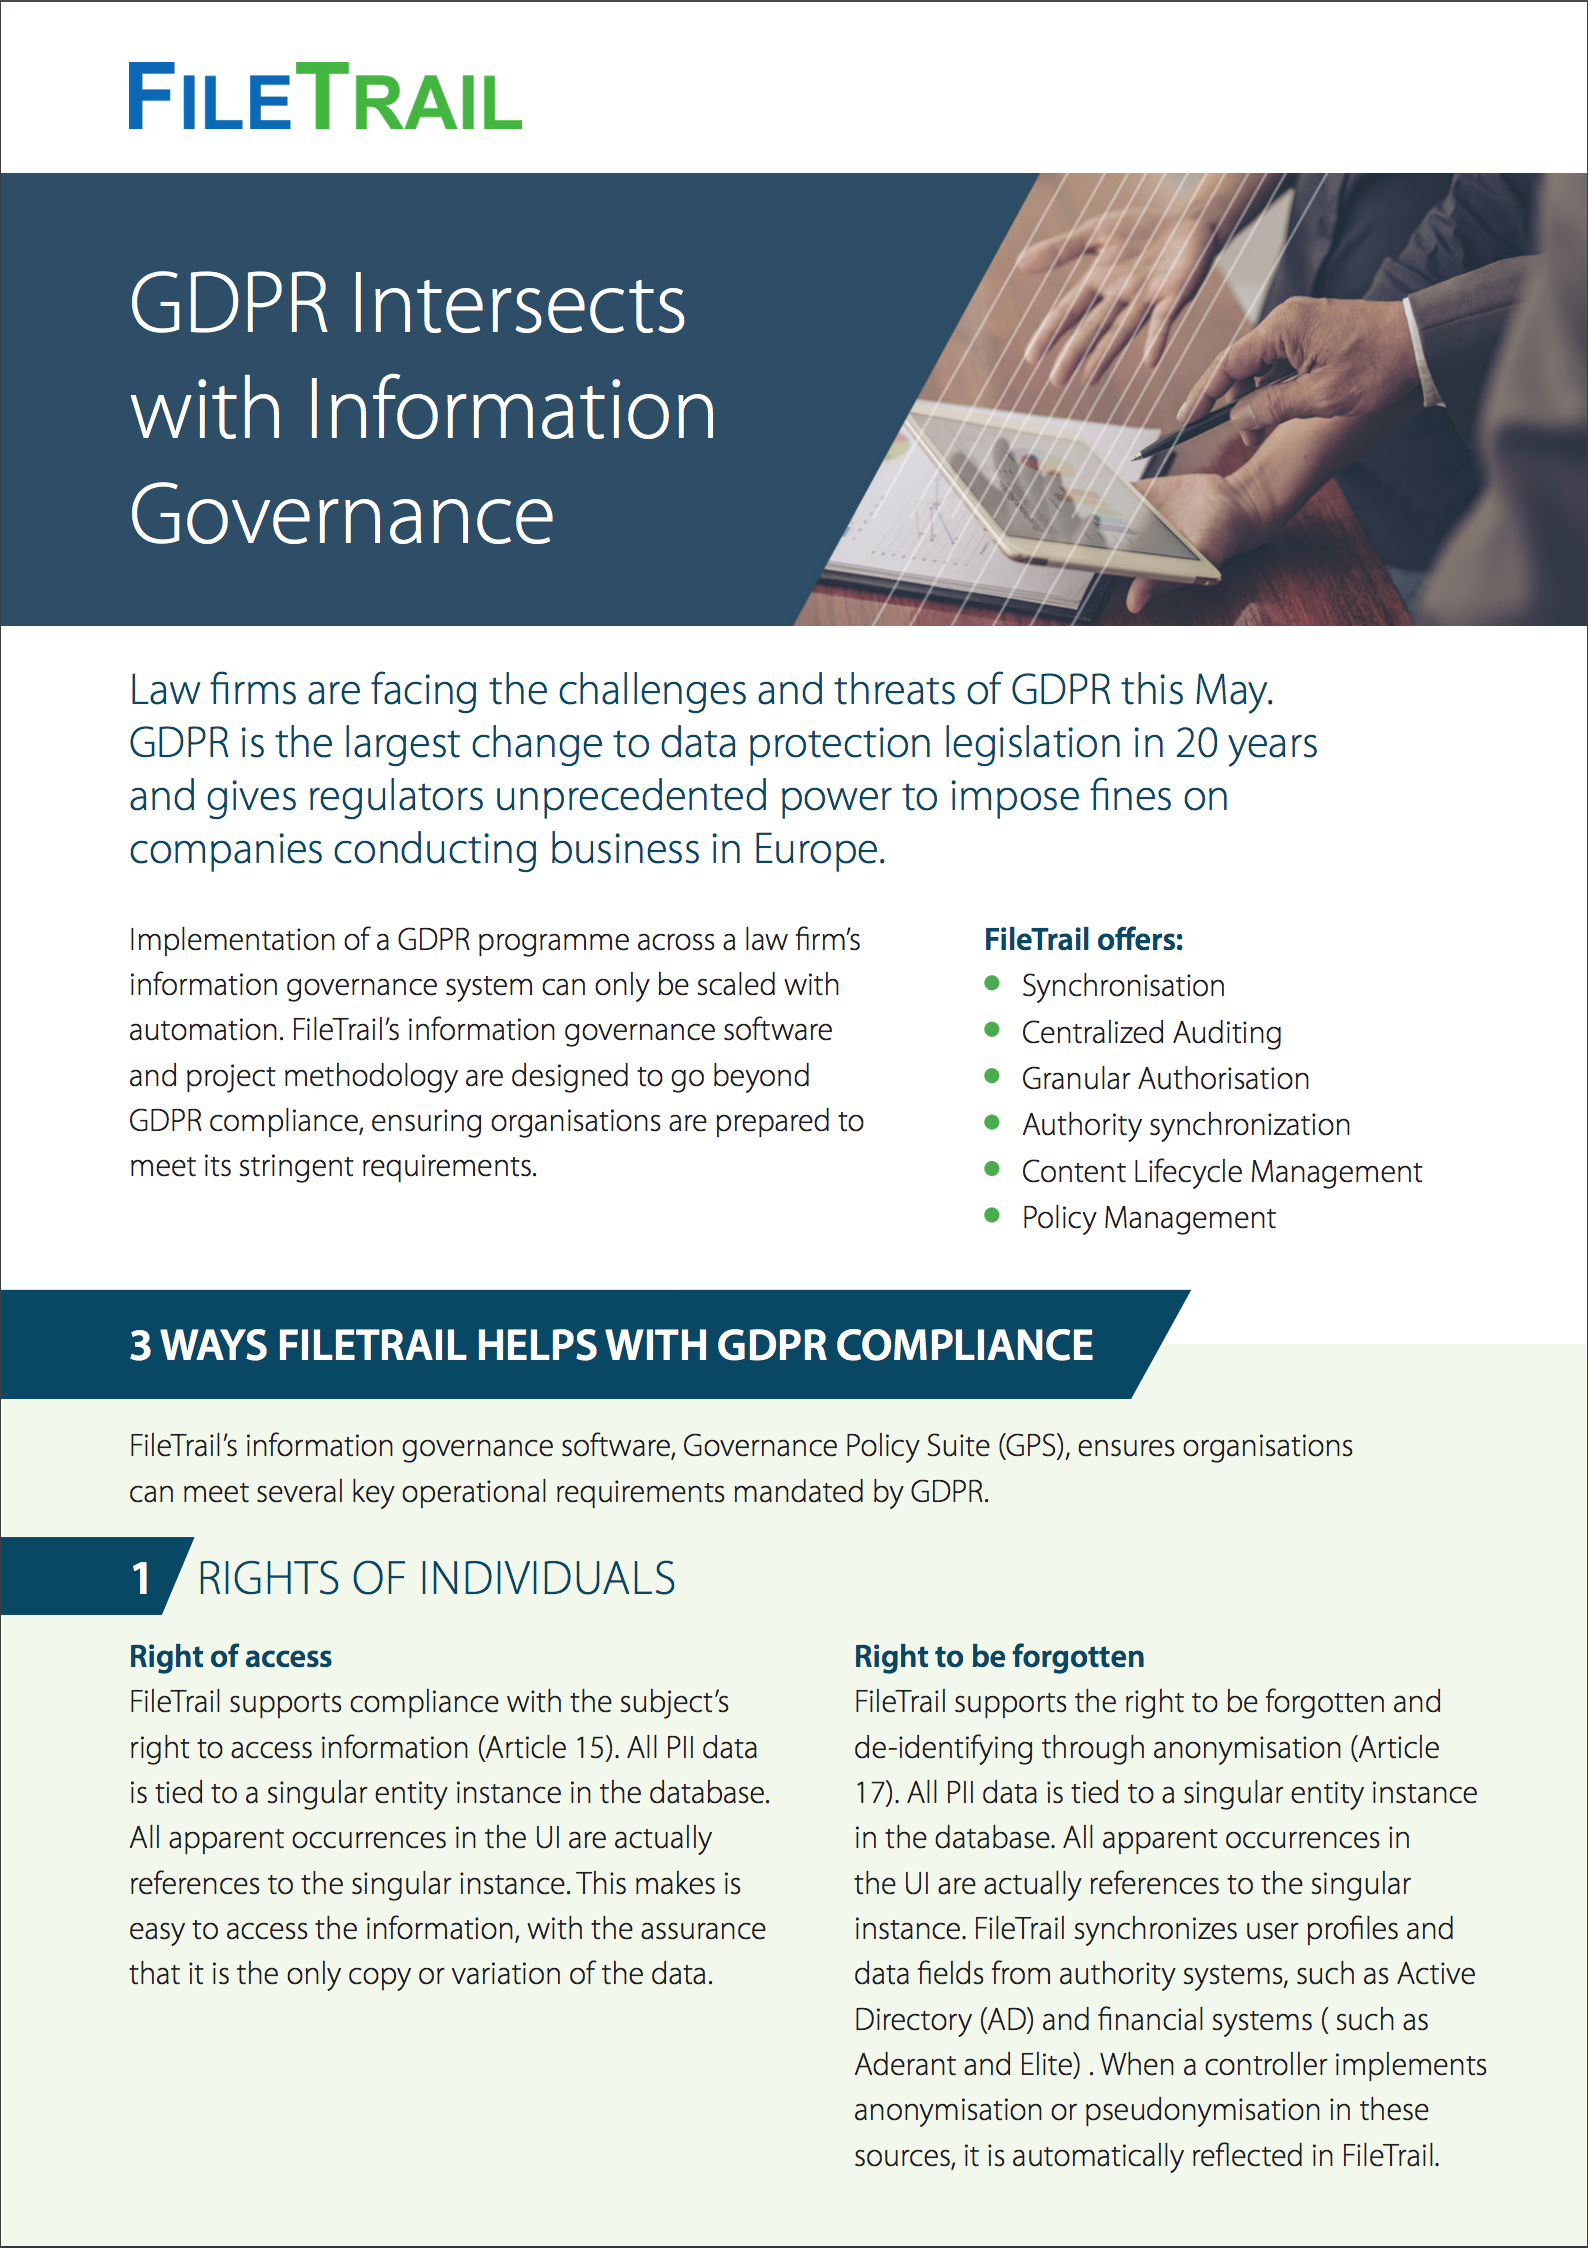 GDPR INtersects with Compliance 3 ways filetrail can help